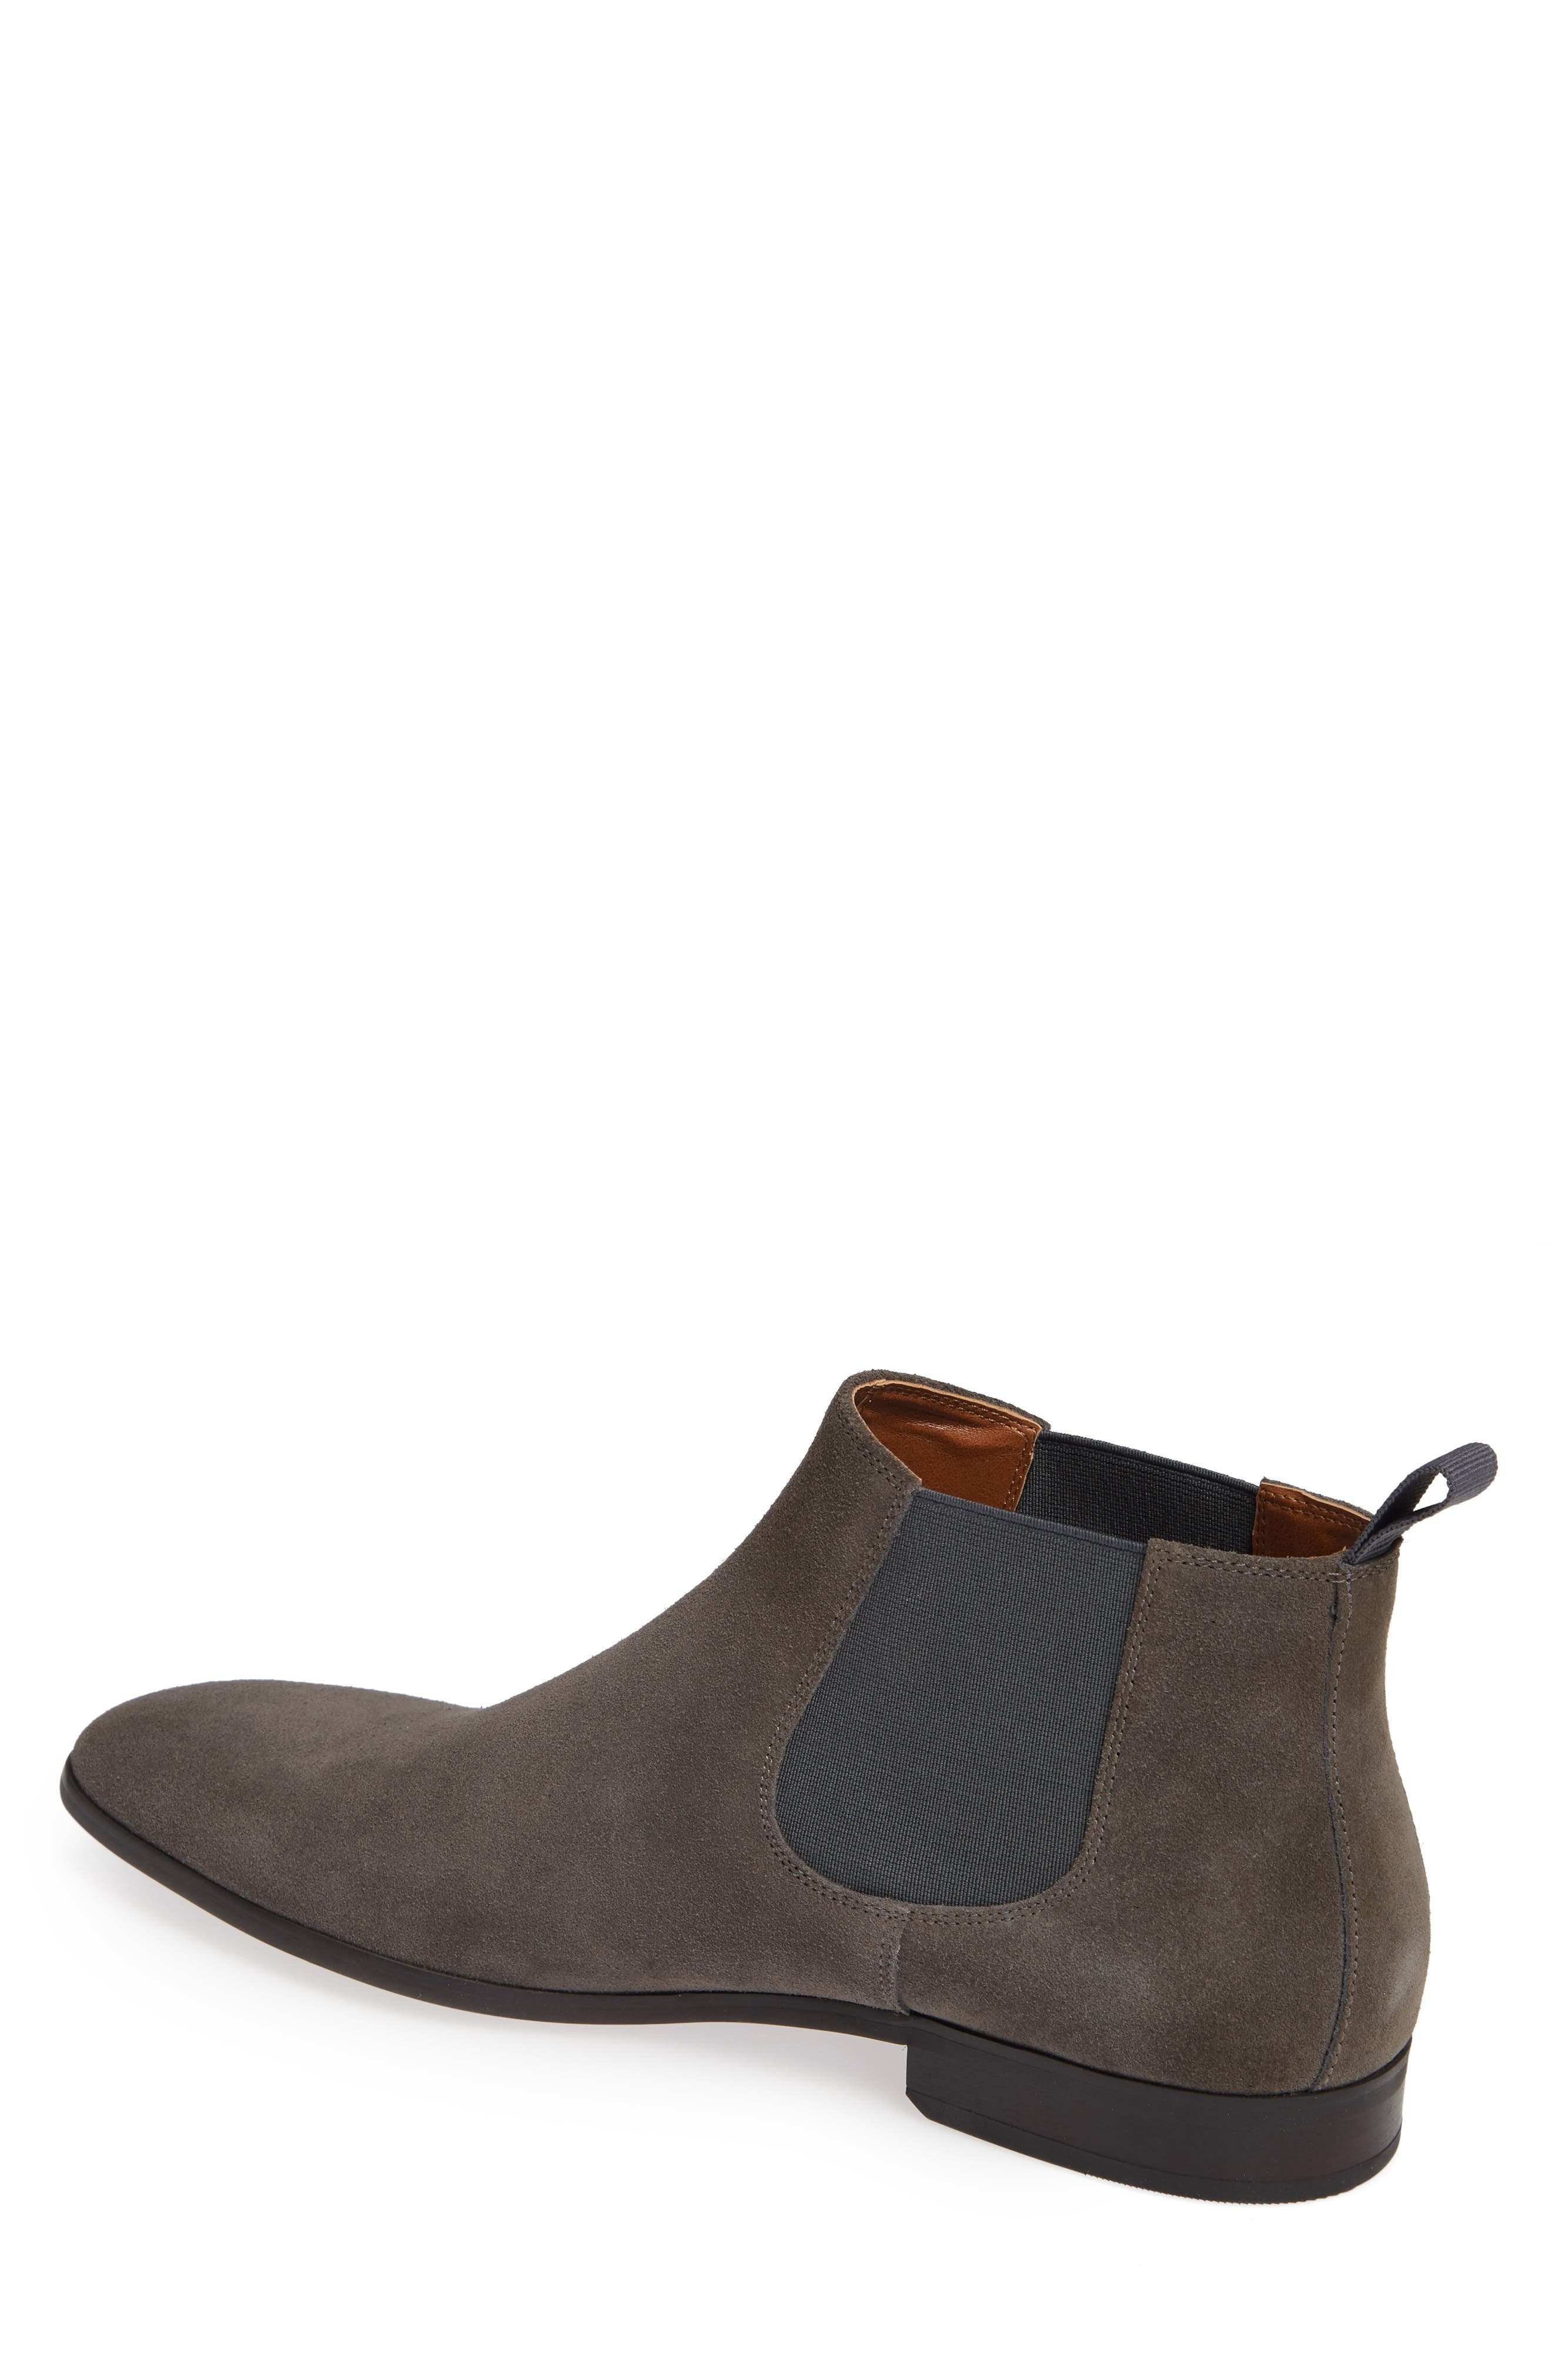 Edward Chelsea Boot,                             Alternate thumbnail 2, color,                             CHARCOAL SUEDE